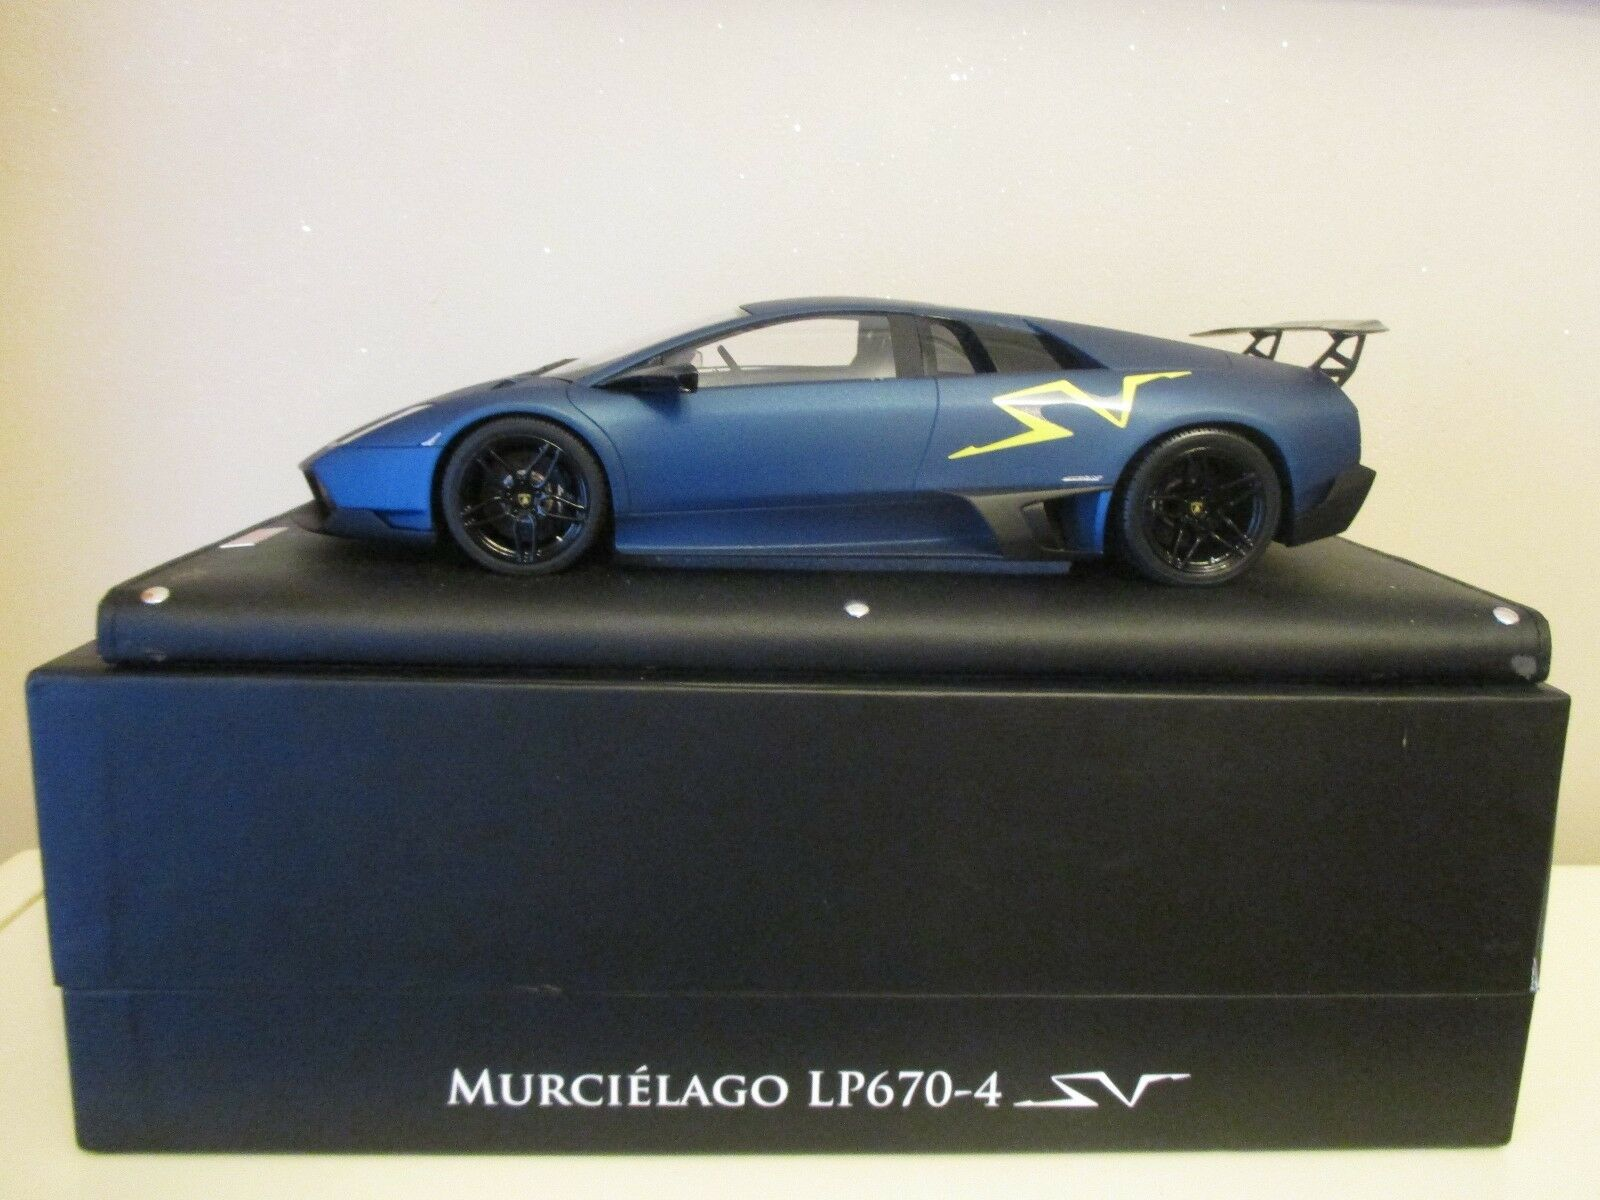 Lamborghini lp670-4 sv mr 1 18 matte bluee no 10 big yellow sv logo new condition